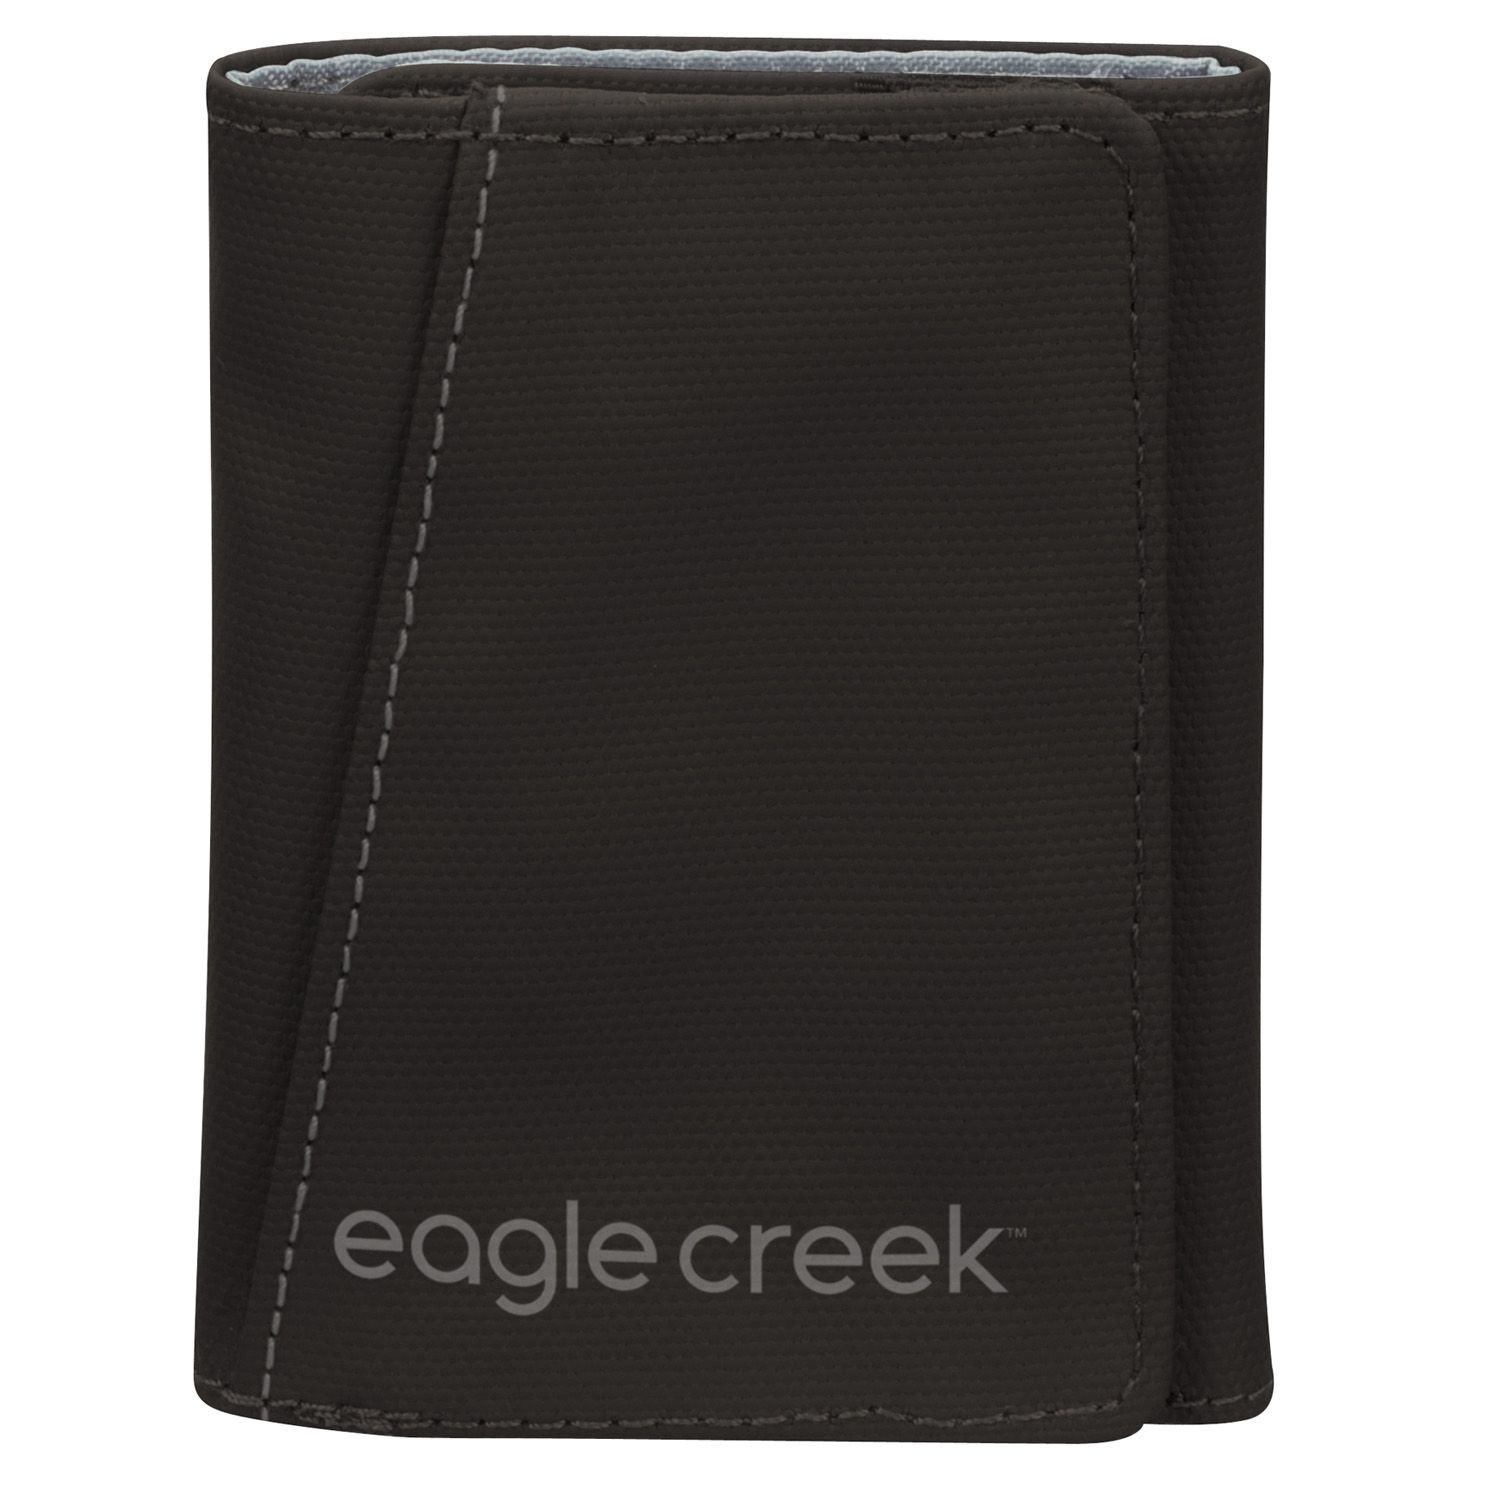 eagle creek senior personals A free inside look at eagle creek salary trends 195 salaries  salaries posted  anonymously by eagle creek employees  senior consultant.